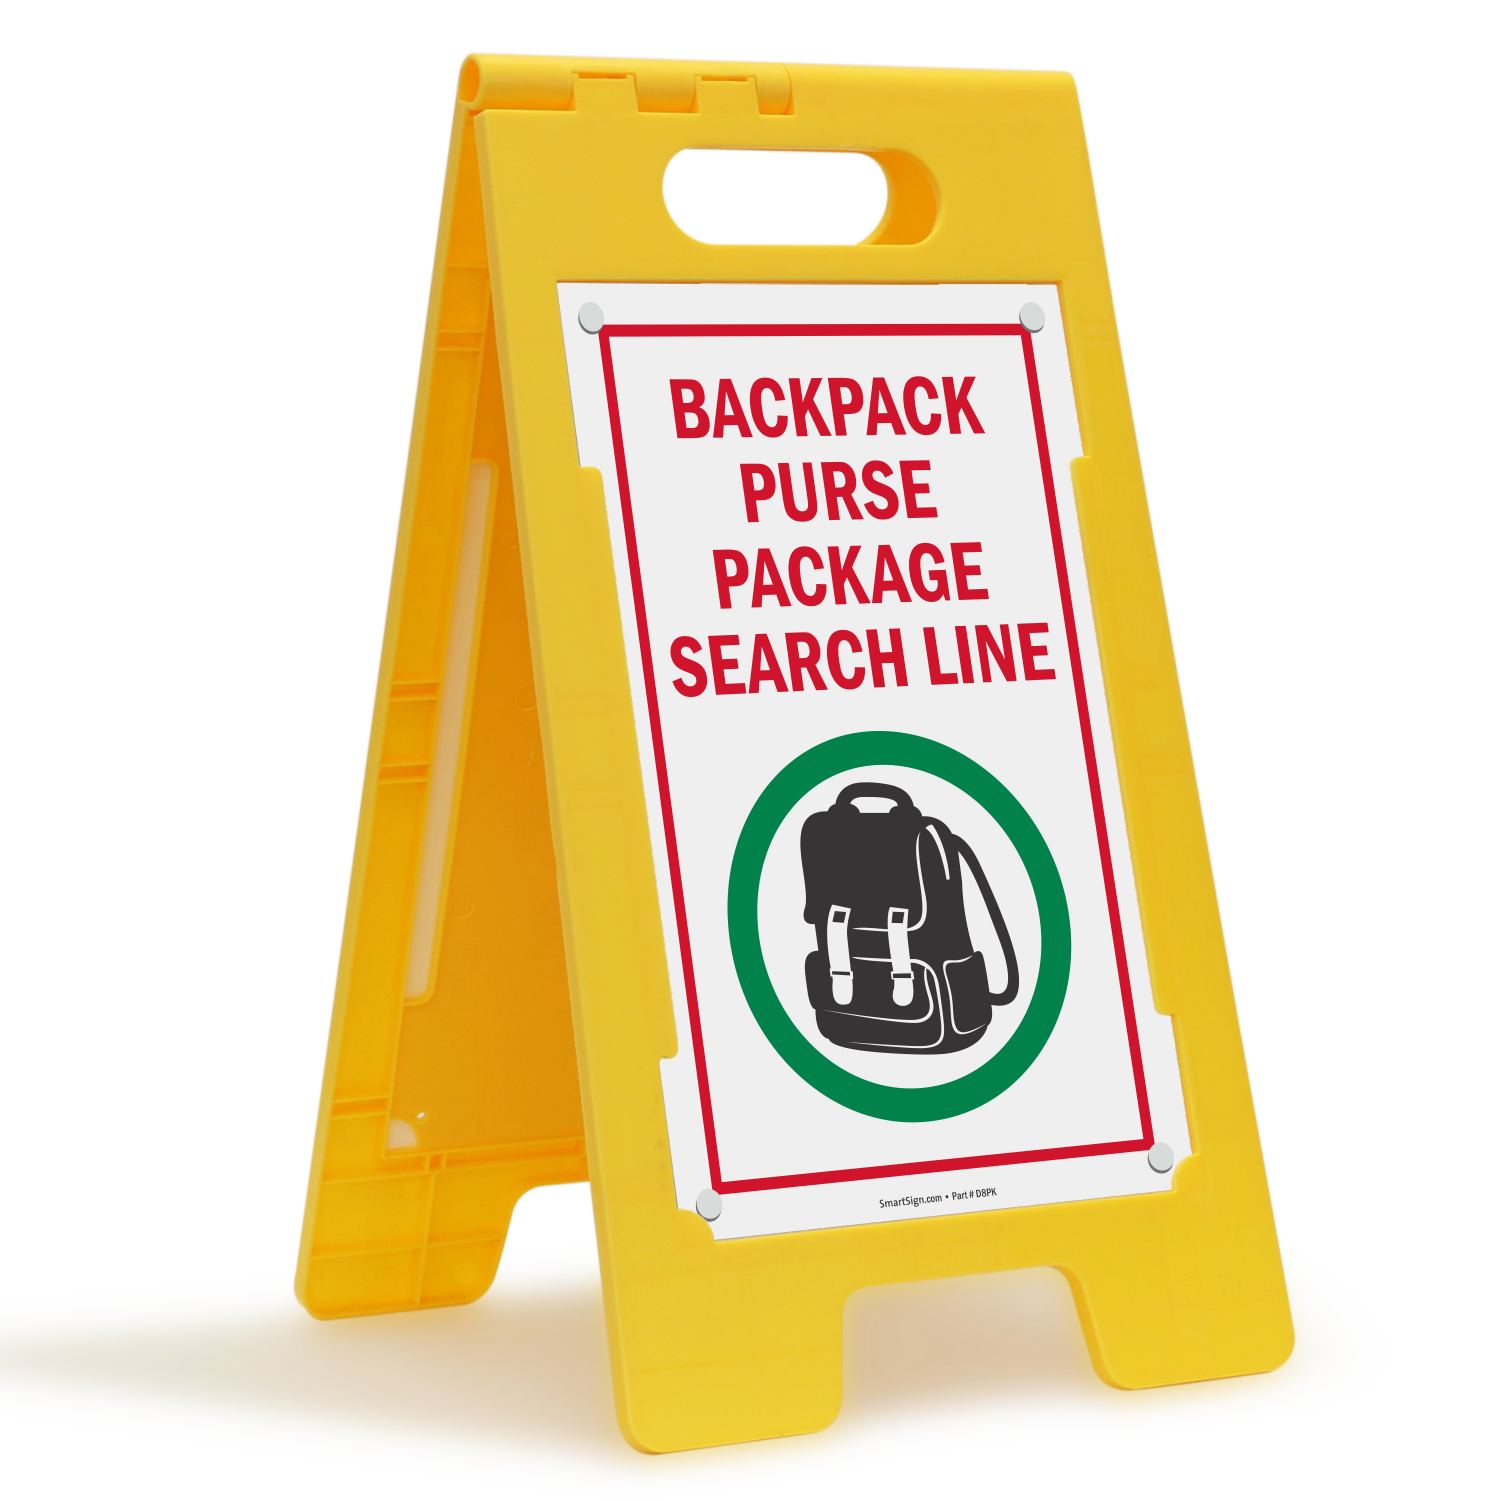 ccdaf84f71ca Package Delivery Signs | Leave Package Signs